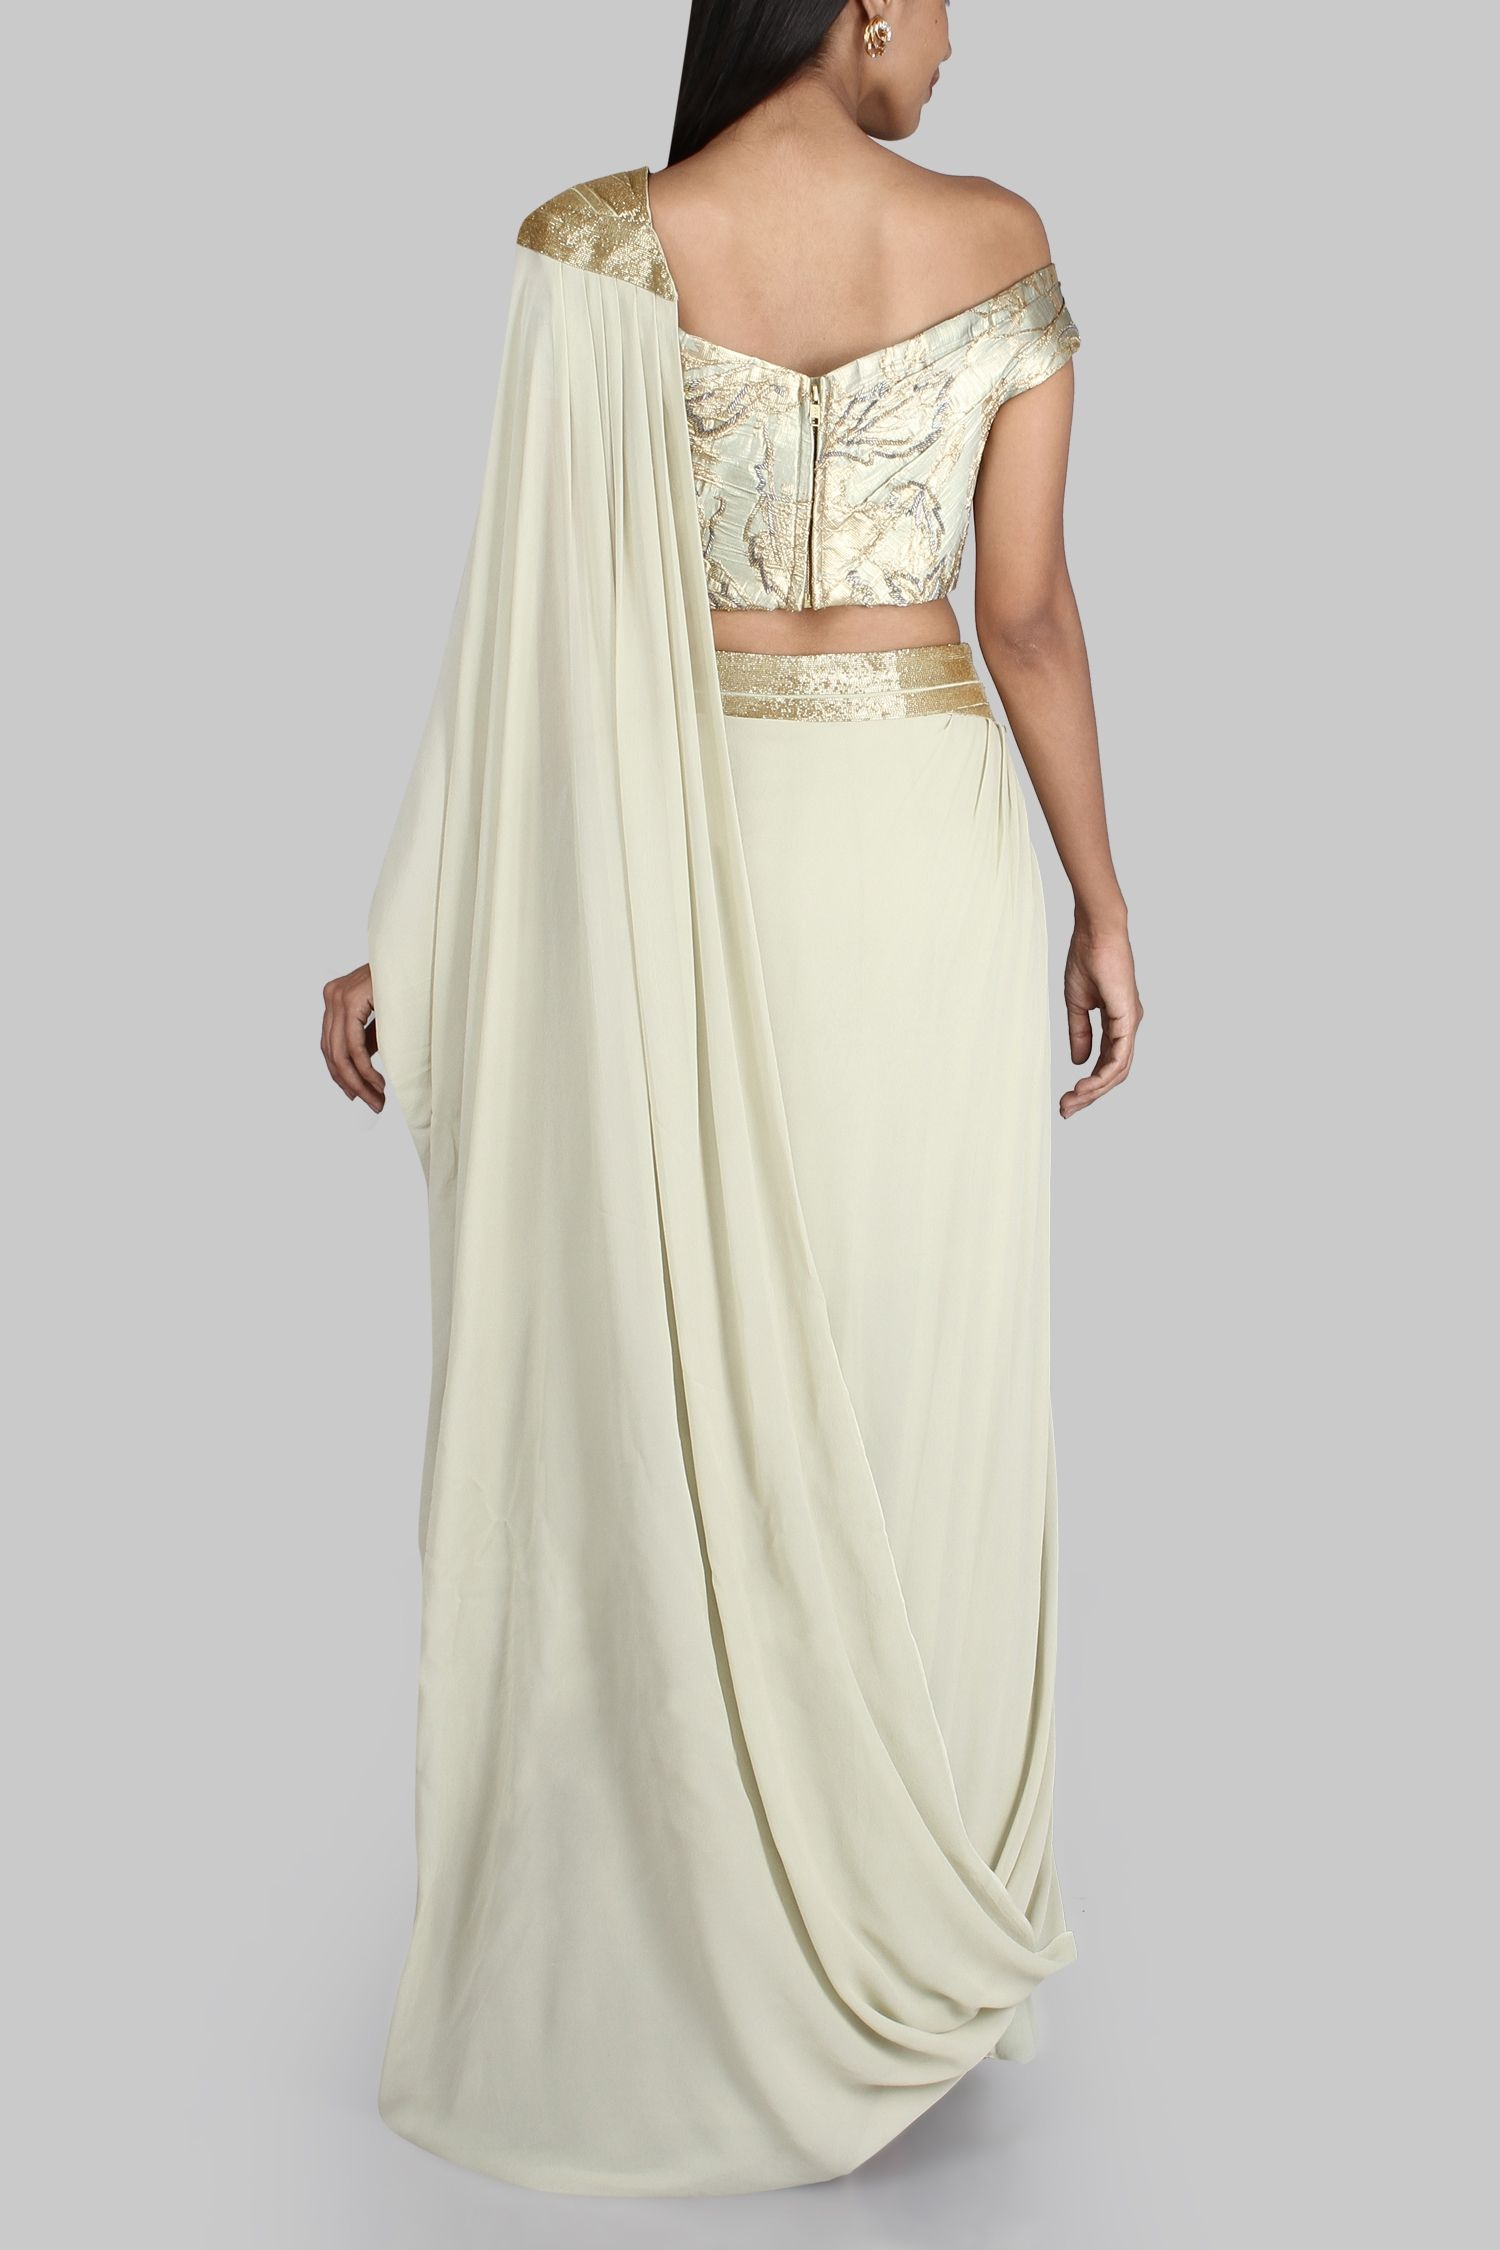 Draped sari gown   Watch your back   Pinterest   Saris, Gowns and ...